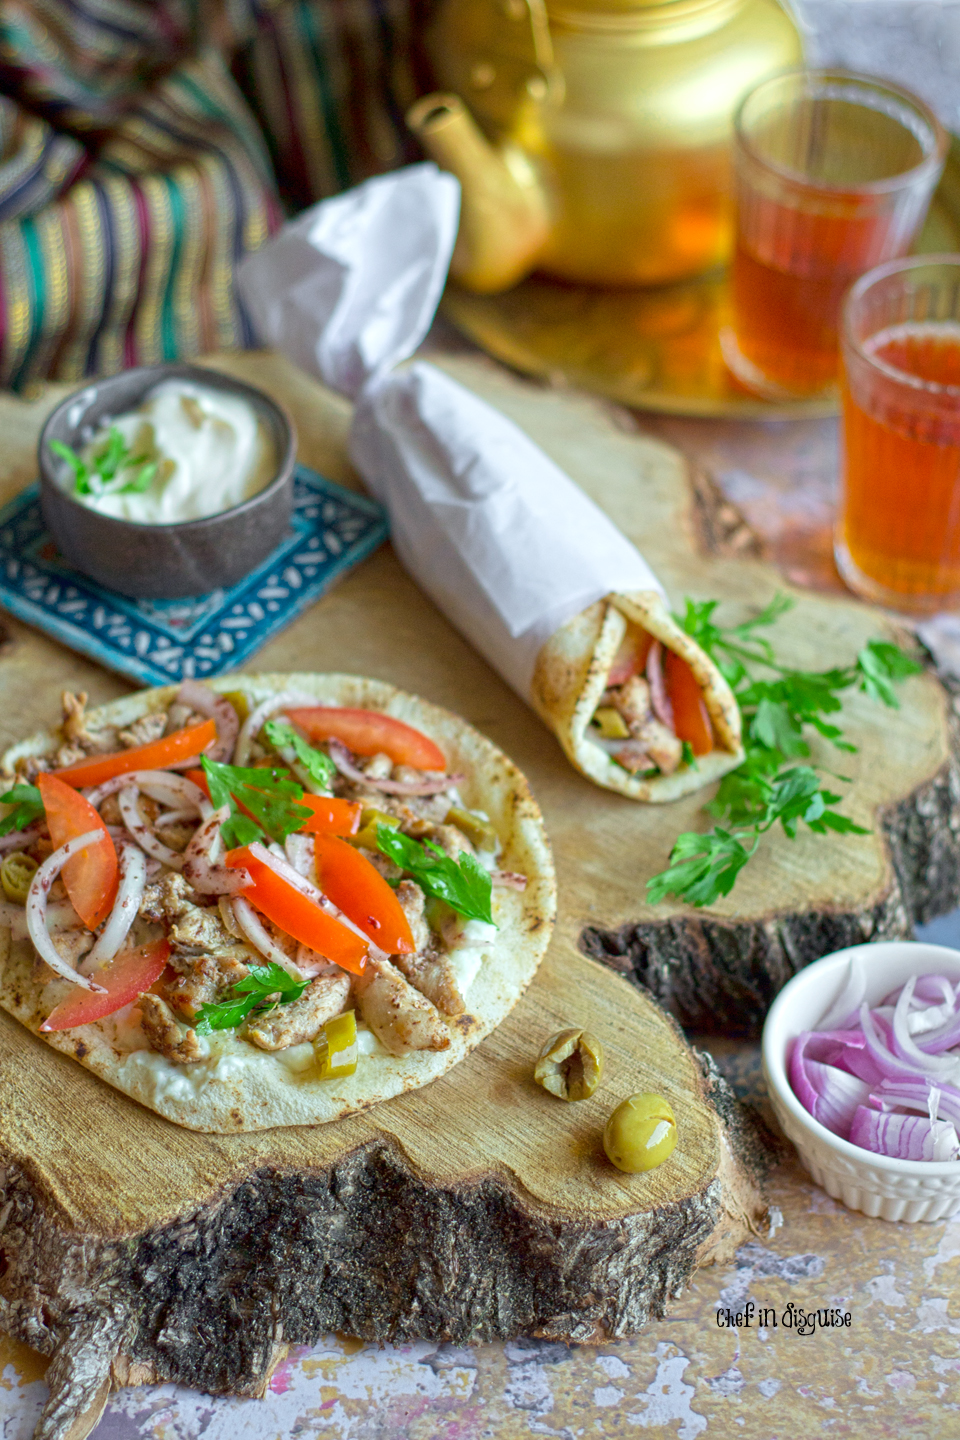 chicken-shawarma-chef-in-disguise